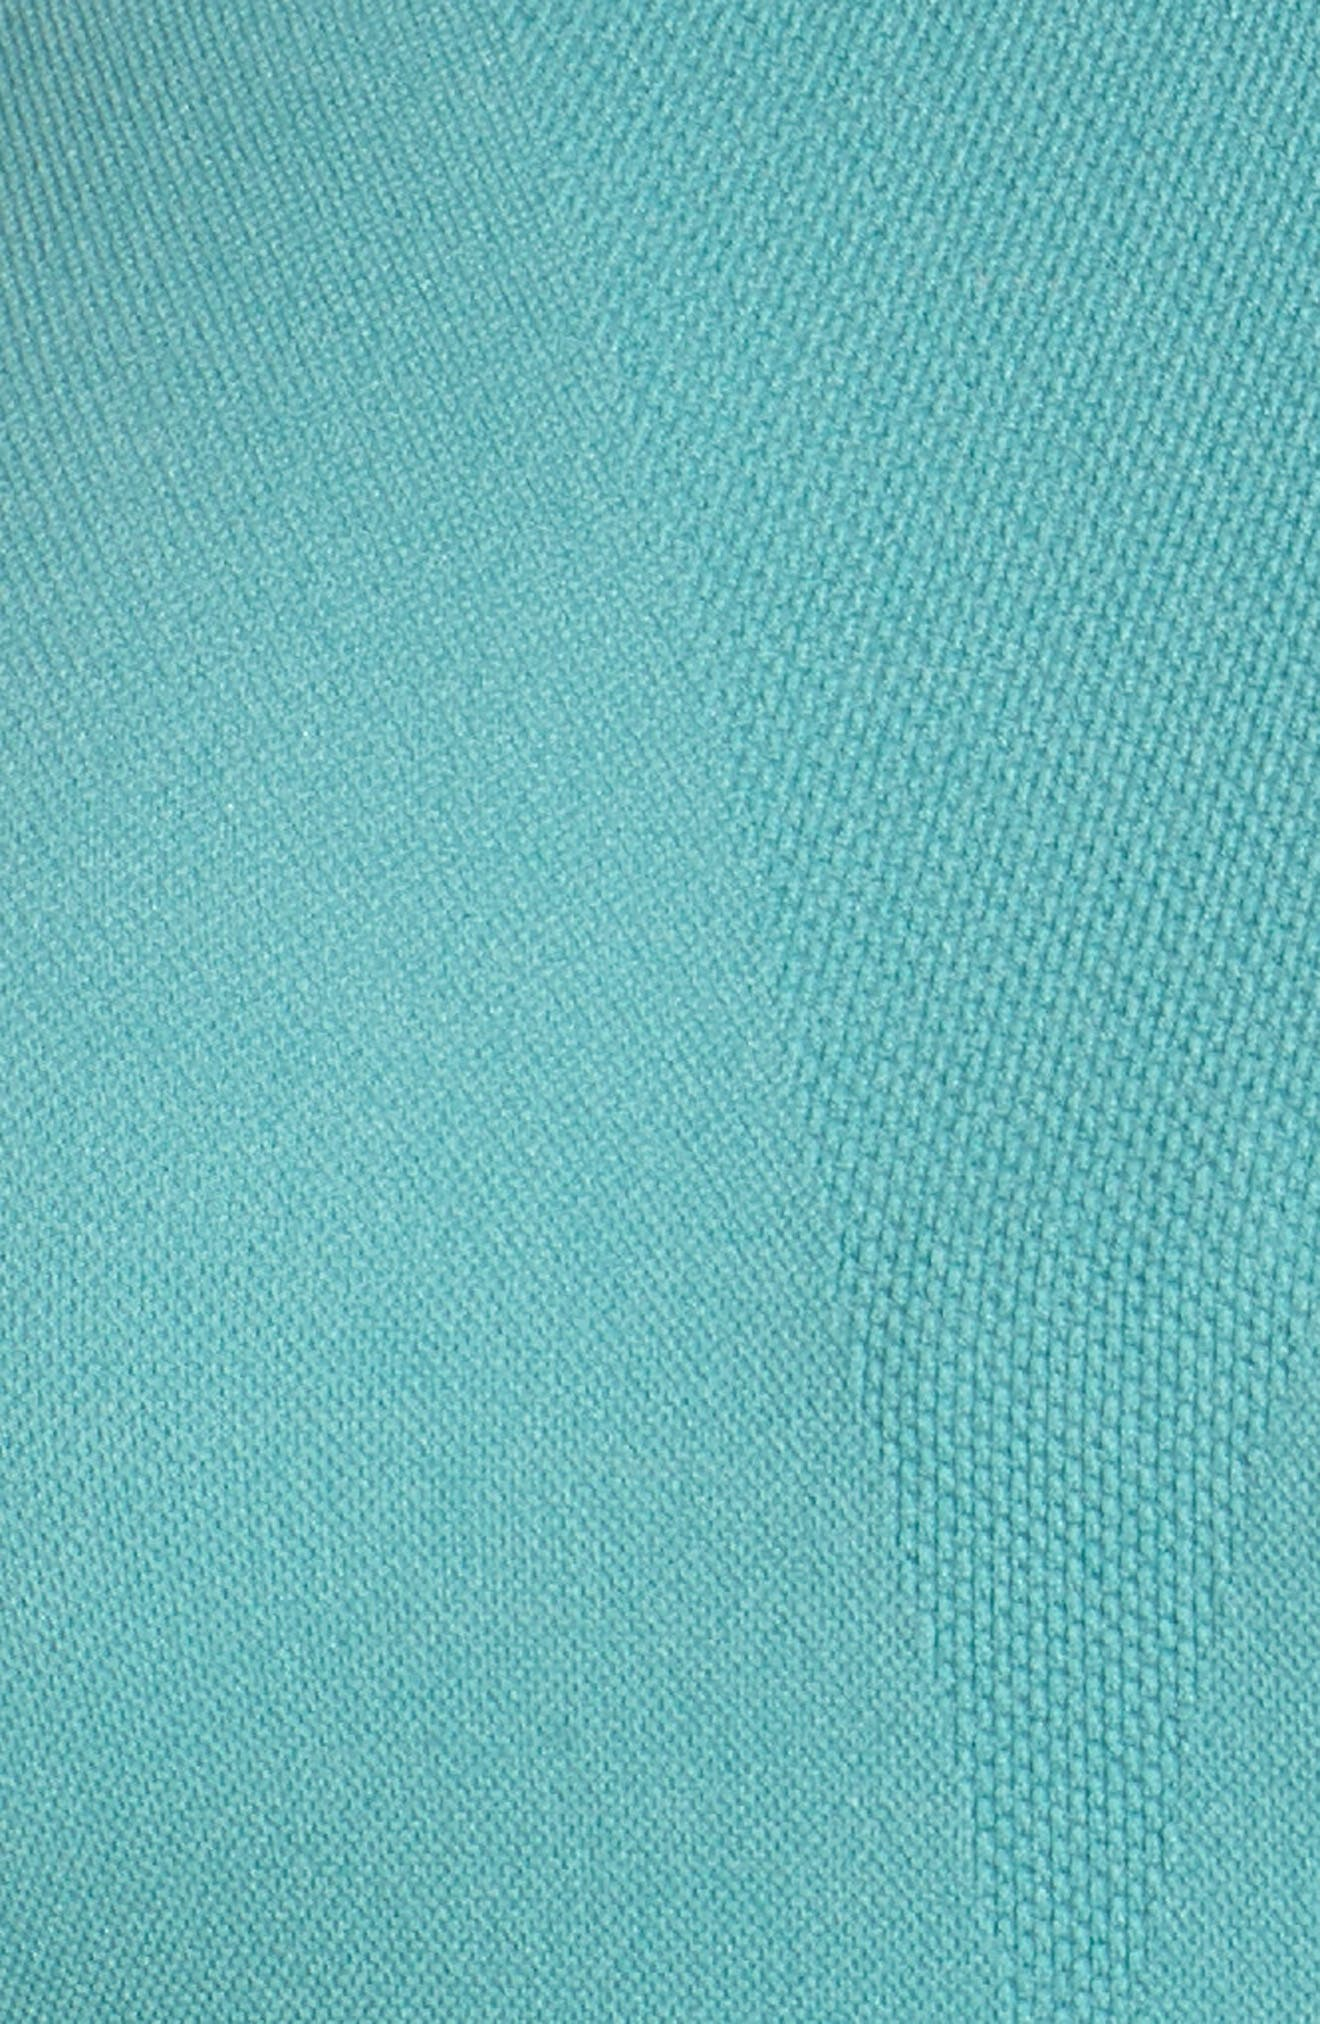 Relay Sports Bra,                             Alternate thumbnail 6, color,                             TEAL MEADOW